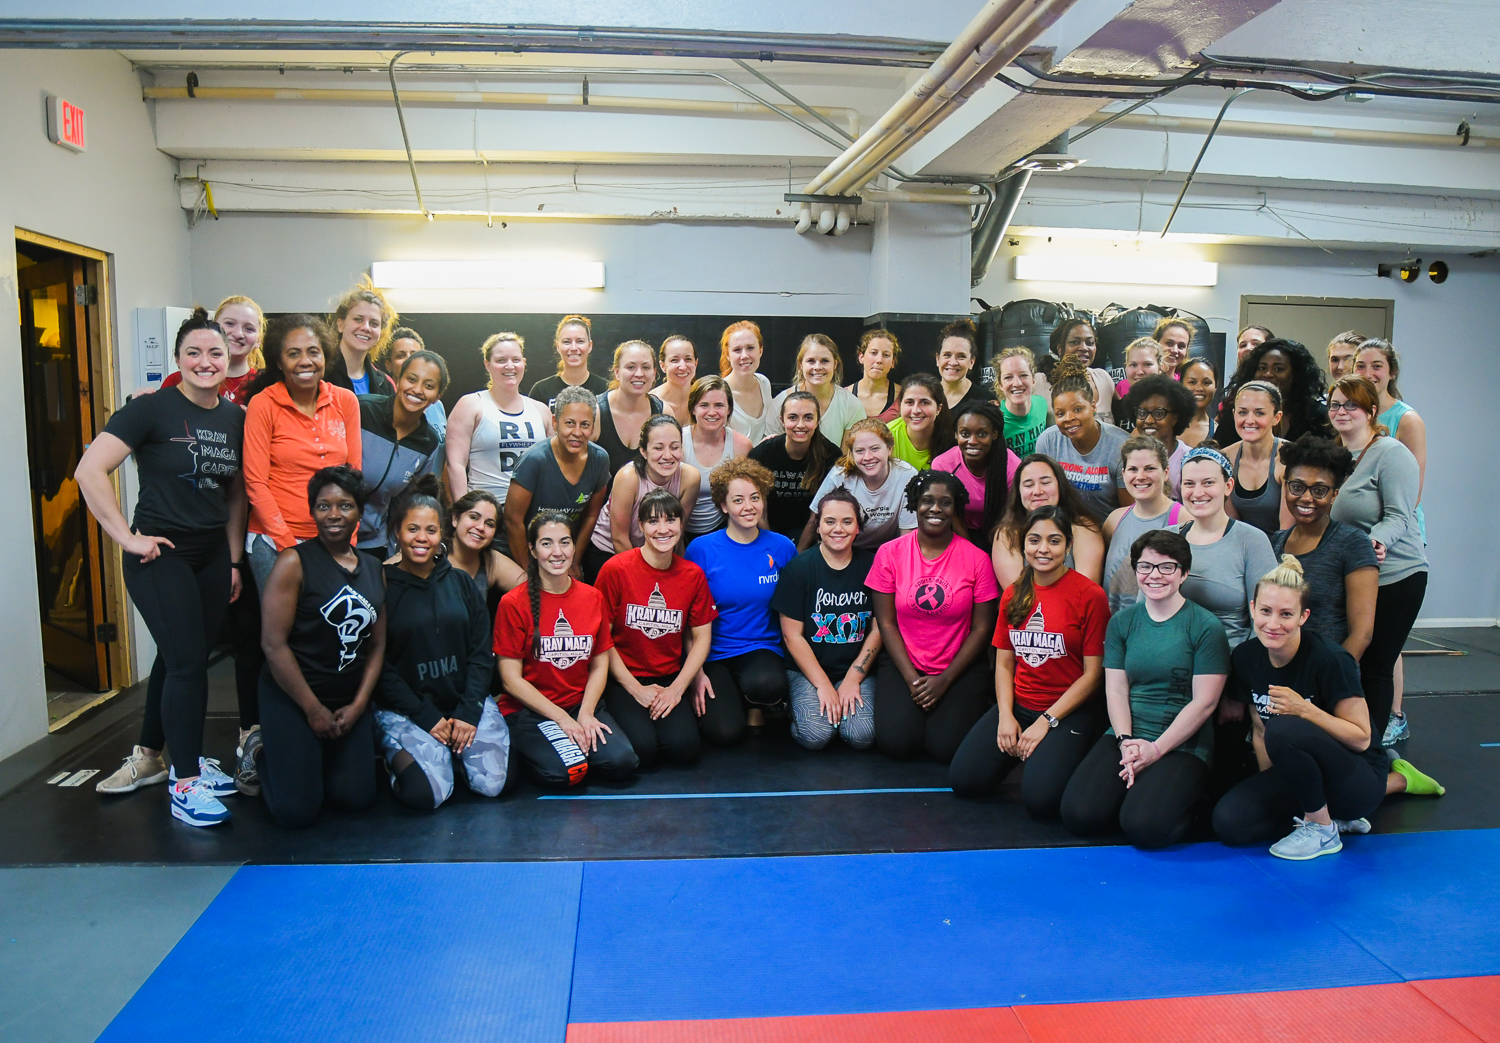 Women's Only Seminar - April 7, 2019